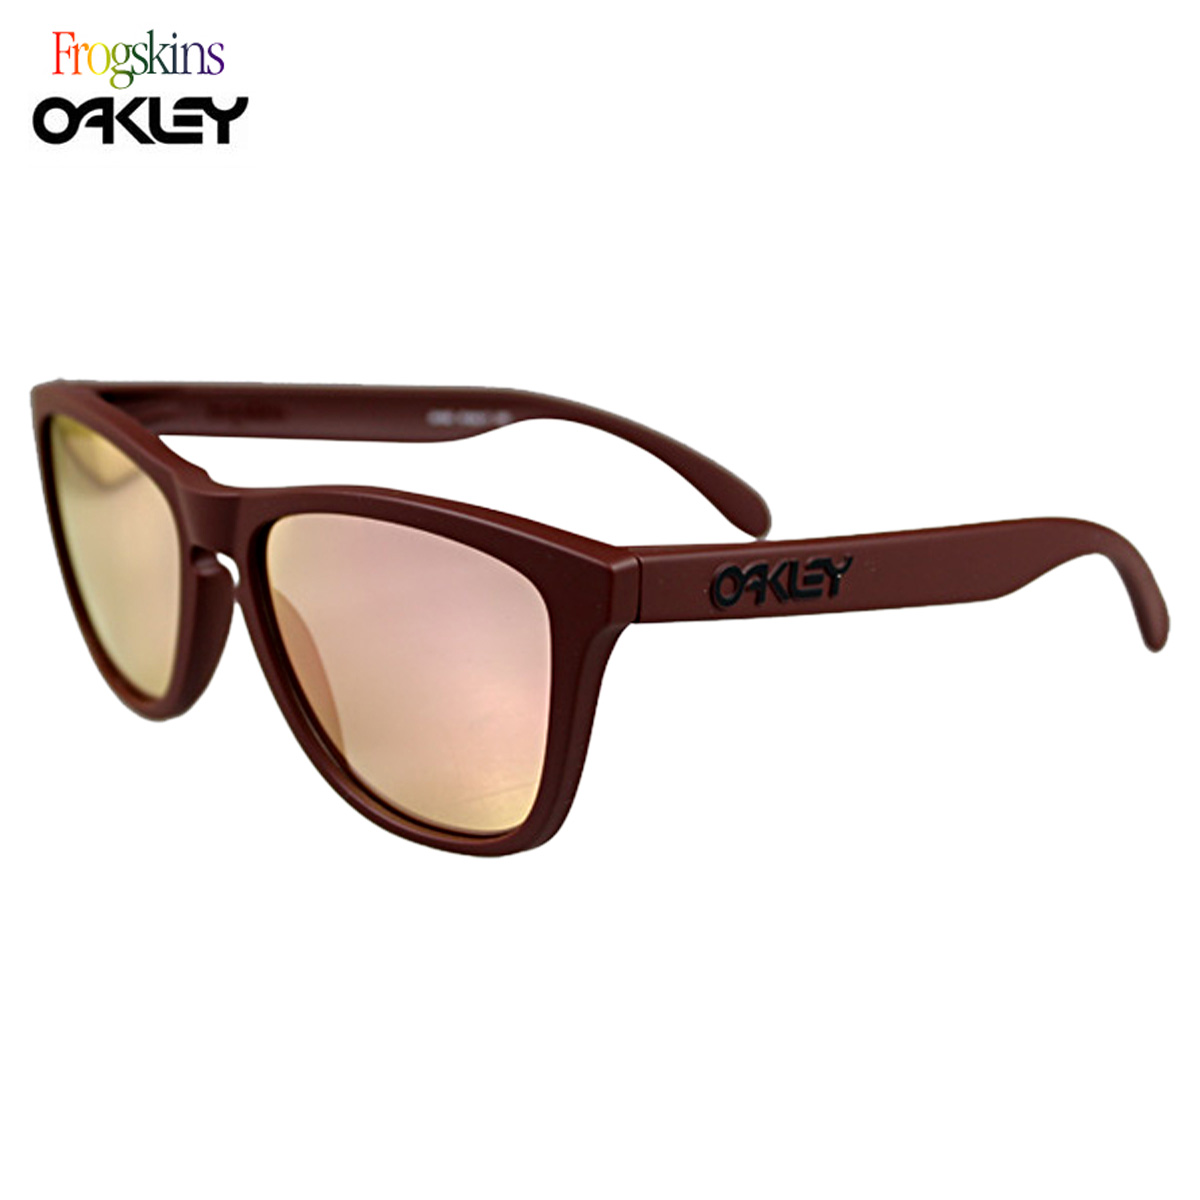 dc20141207 24-342 Sunglasses Oakley Oakley FROGSKINS SUMMIT COLLECTION frog skin men  women